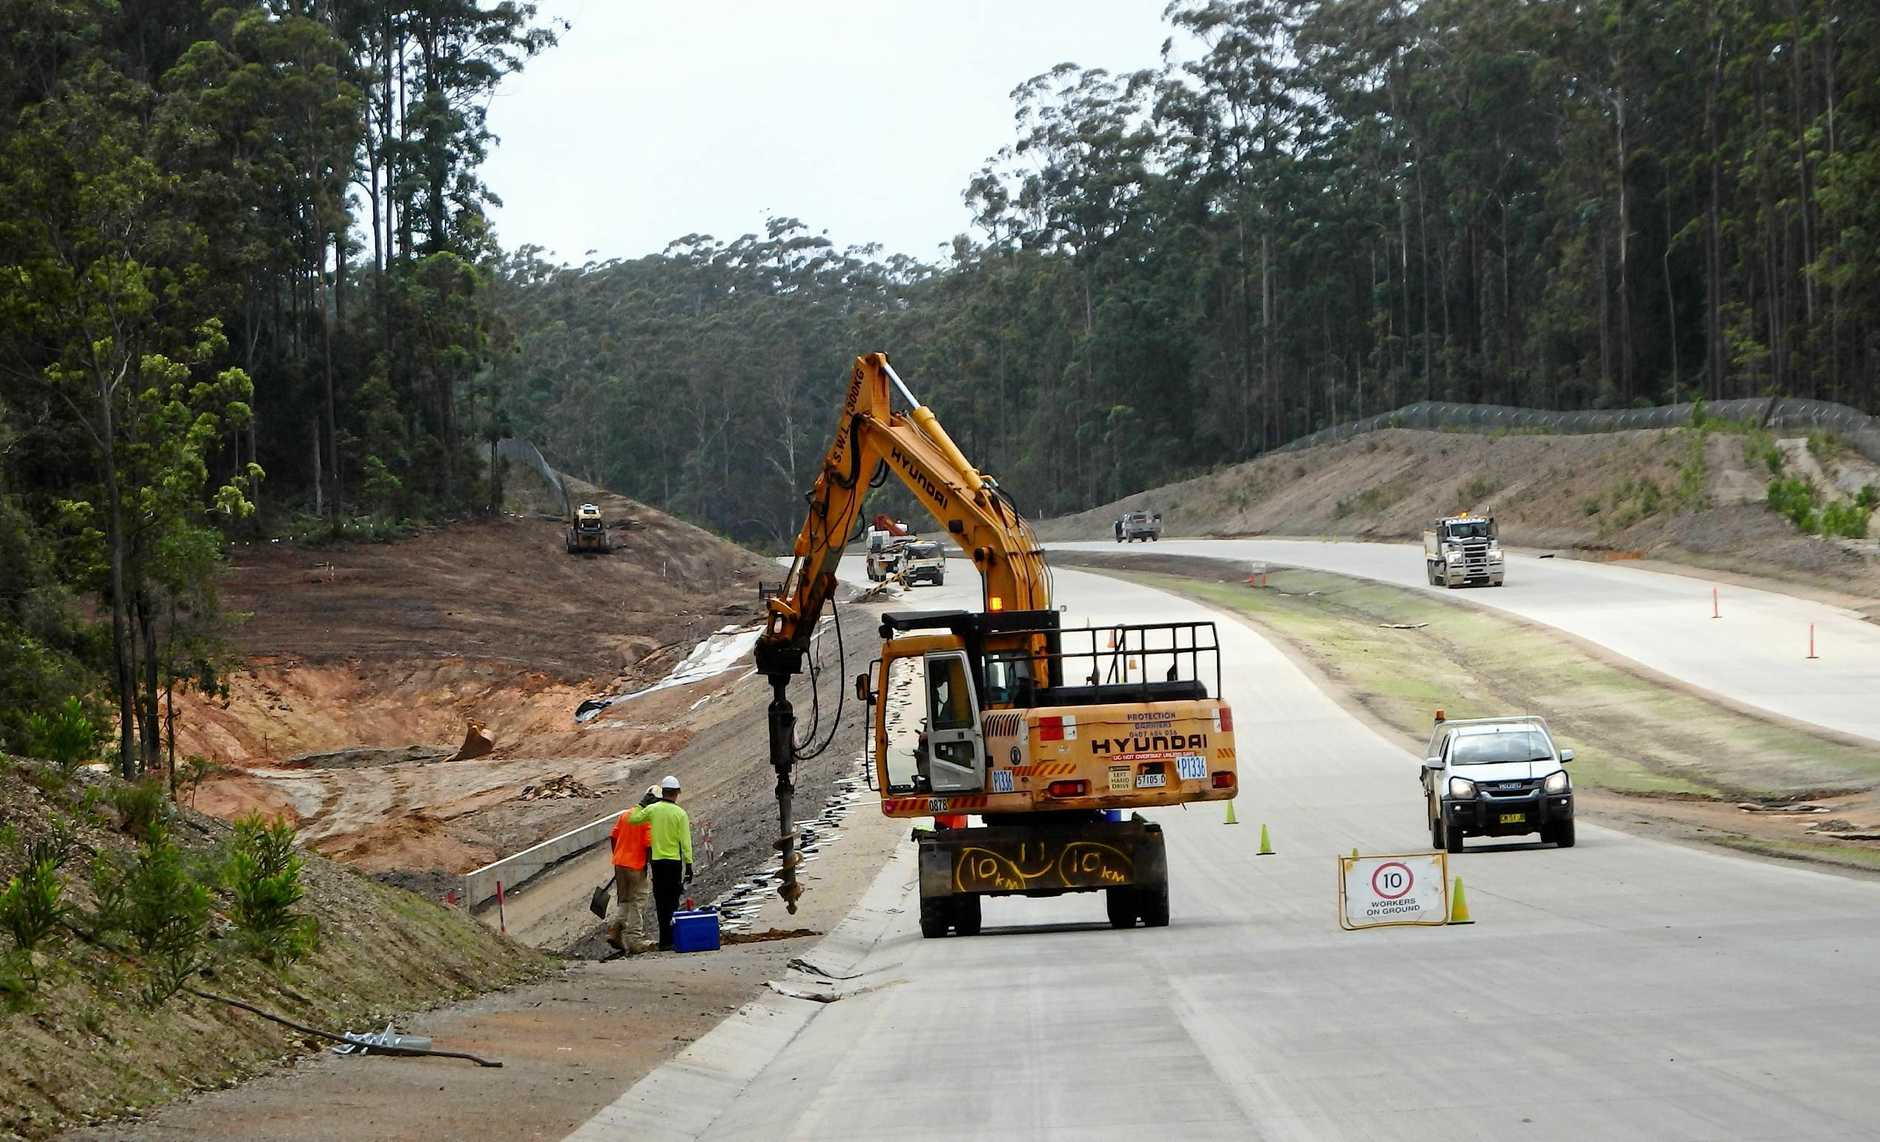 Work crews drilling holes for support posts for wire ropes on the new highway edges.